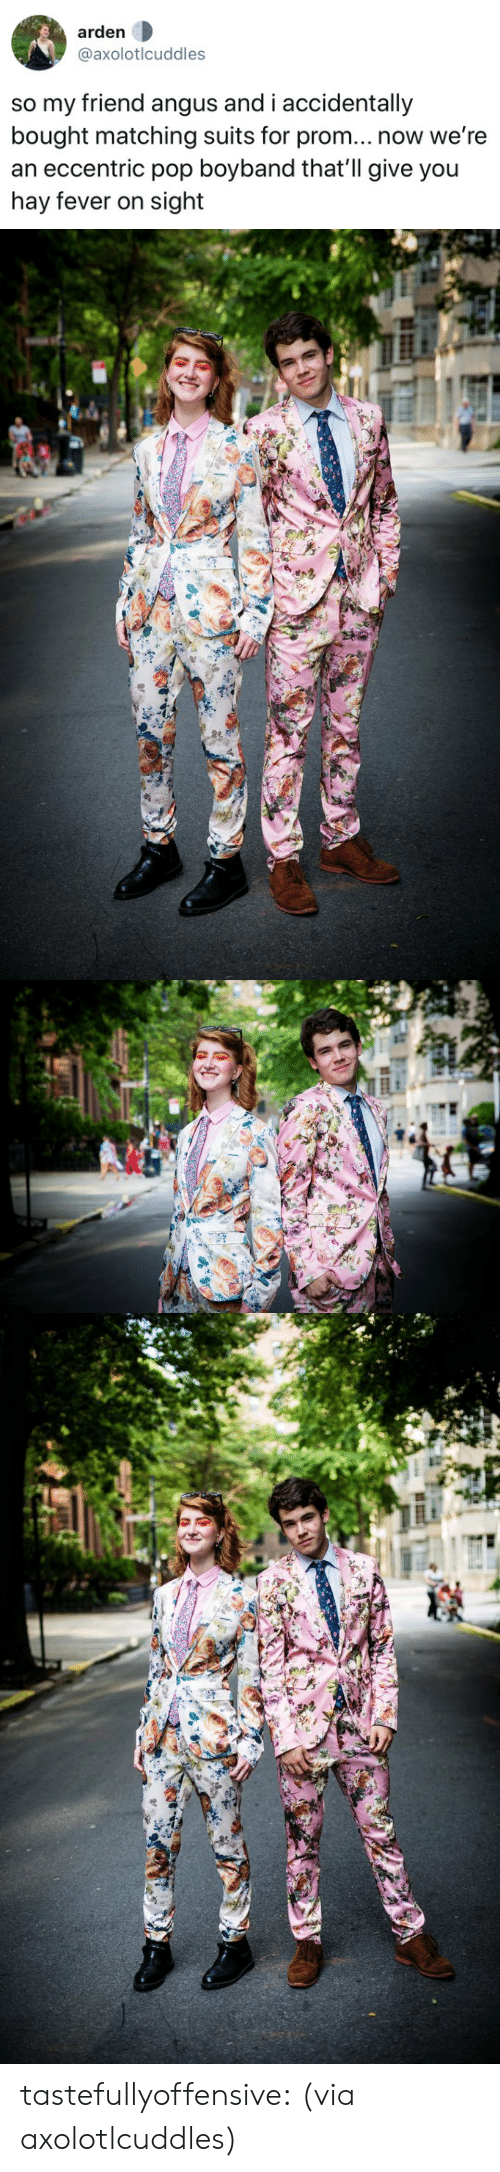 Pop, Tumblr, and Twitter: arden  @axolotlcuddles  so my friend angus and i accidentally  bought matching suits for prom... now we're  an eccentric pop boyband that'll give you  hay fever on sight tastefullyoffensive:  (via axolotlcuddles)